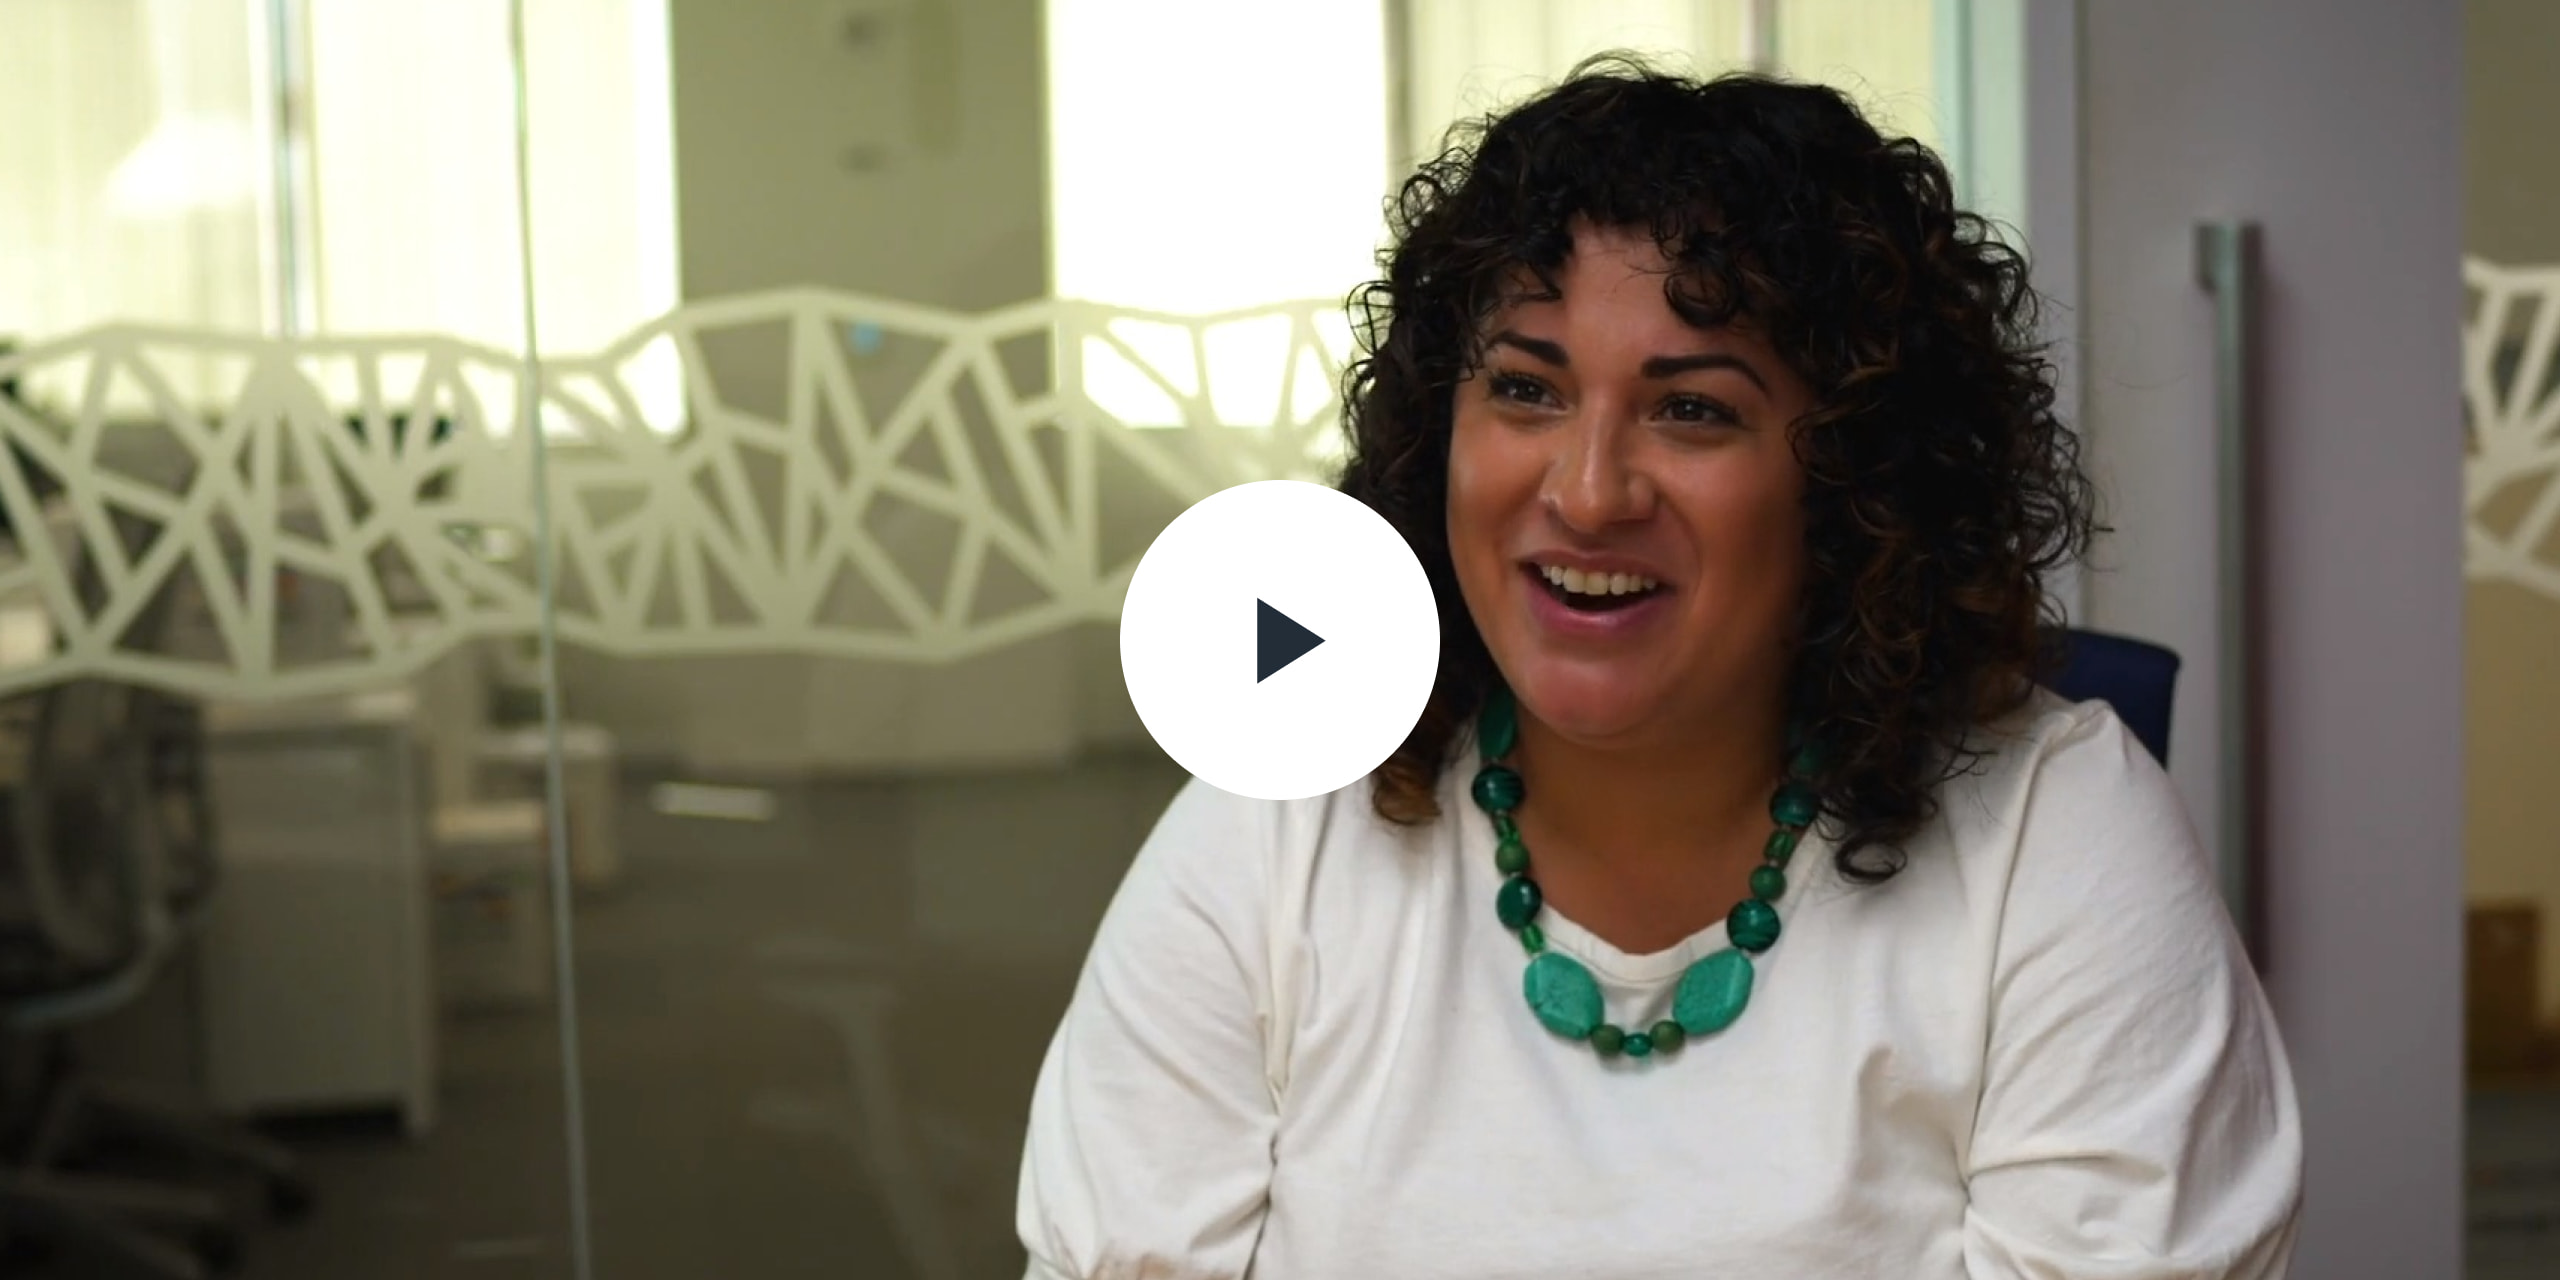 Introducing Olivia from Instapage: Managers are the Lifeline to Your People